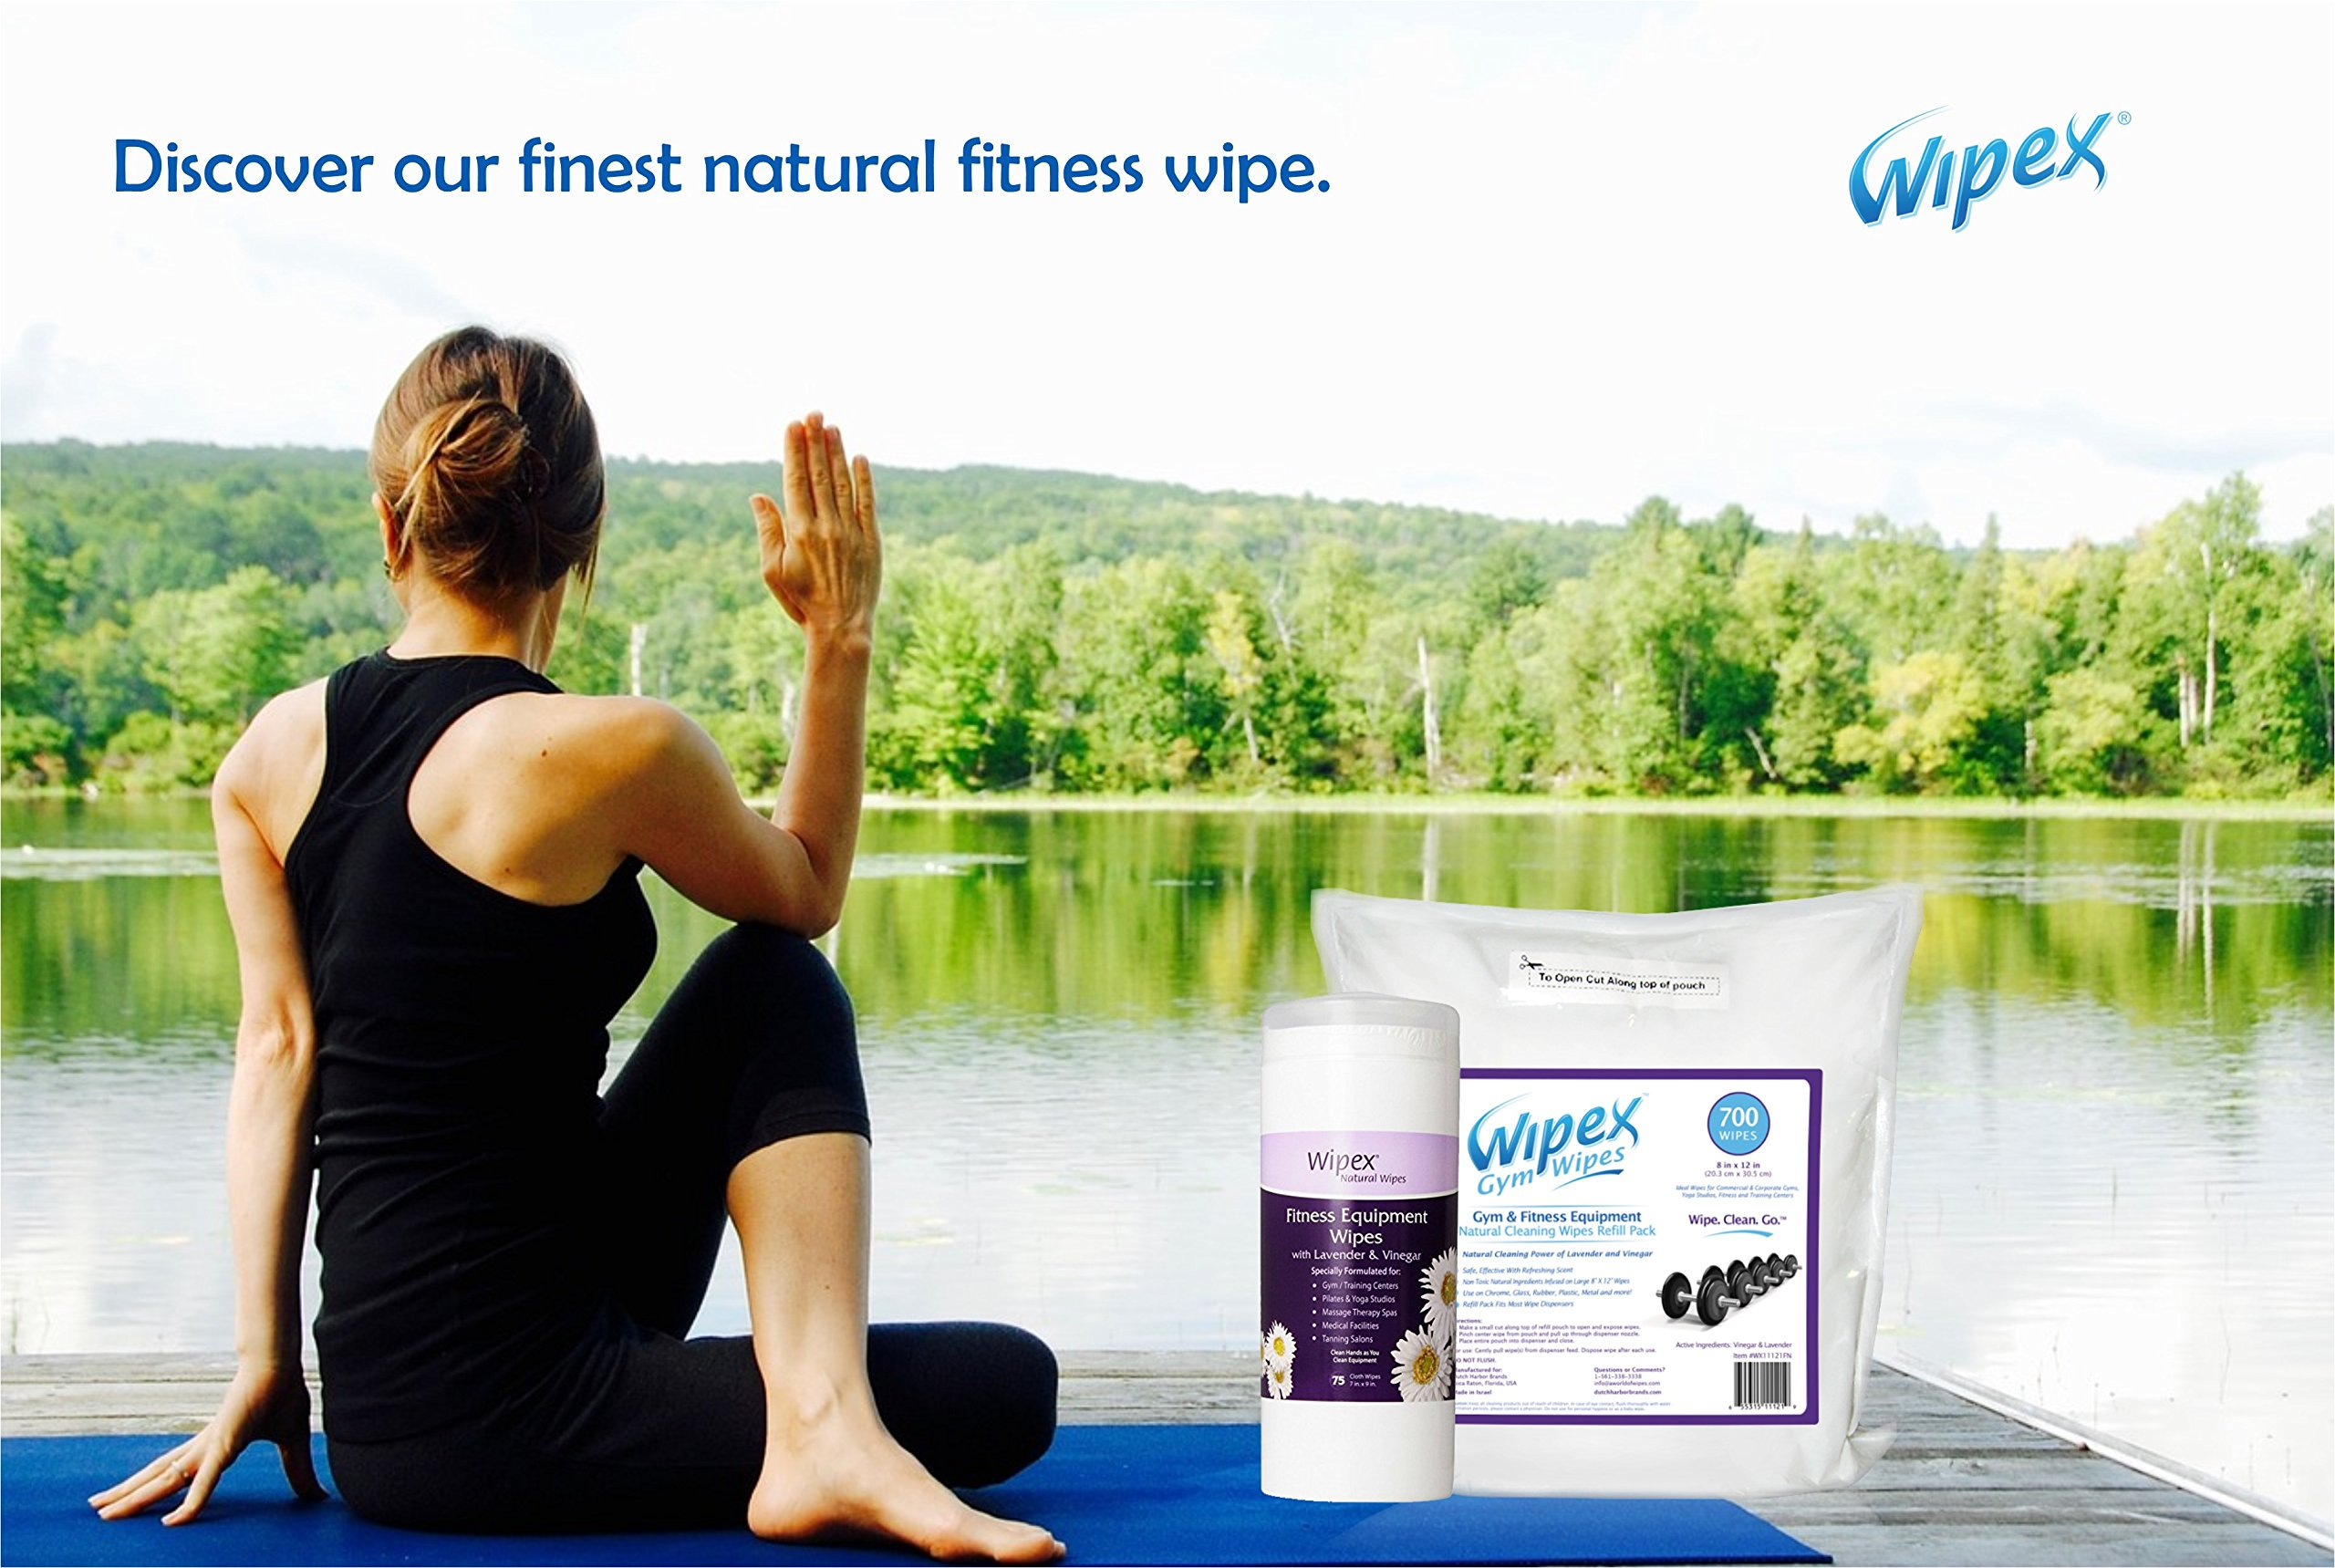 Wipex Gym & Fitness Wipes Refill Pack, 700 Large Natural Wipes Infused with Vinegar & Lavender (4) by Wipex